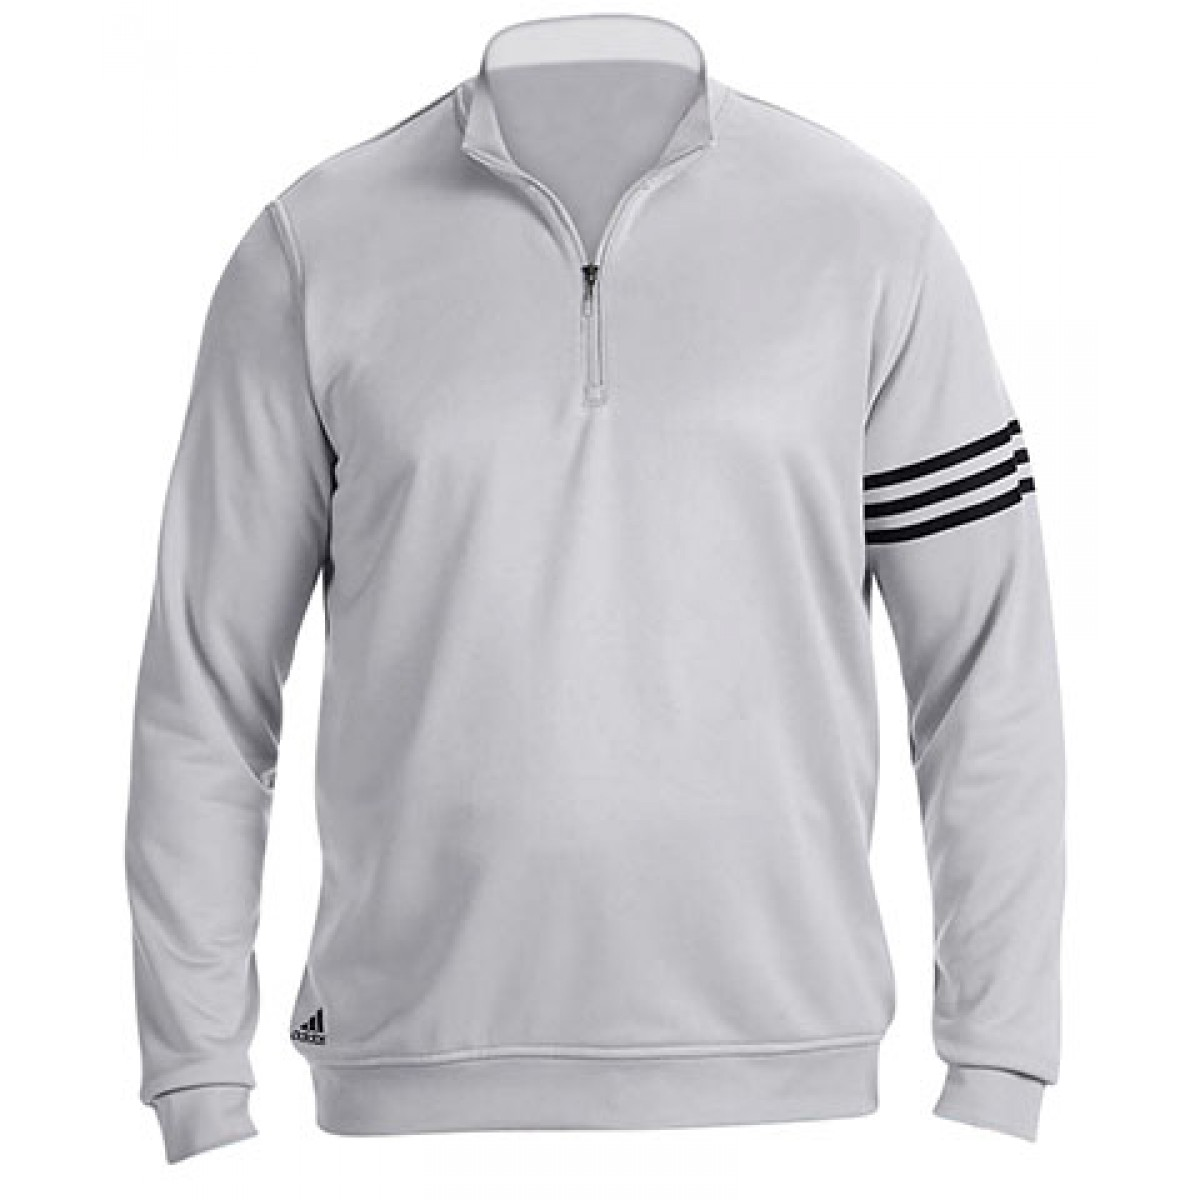 Adidas Men's 3-Stripes Pullover-Gray -L